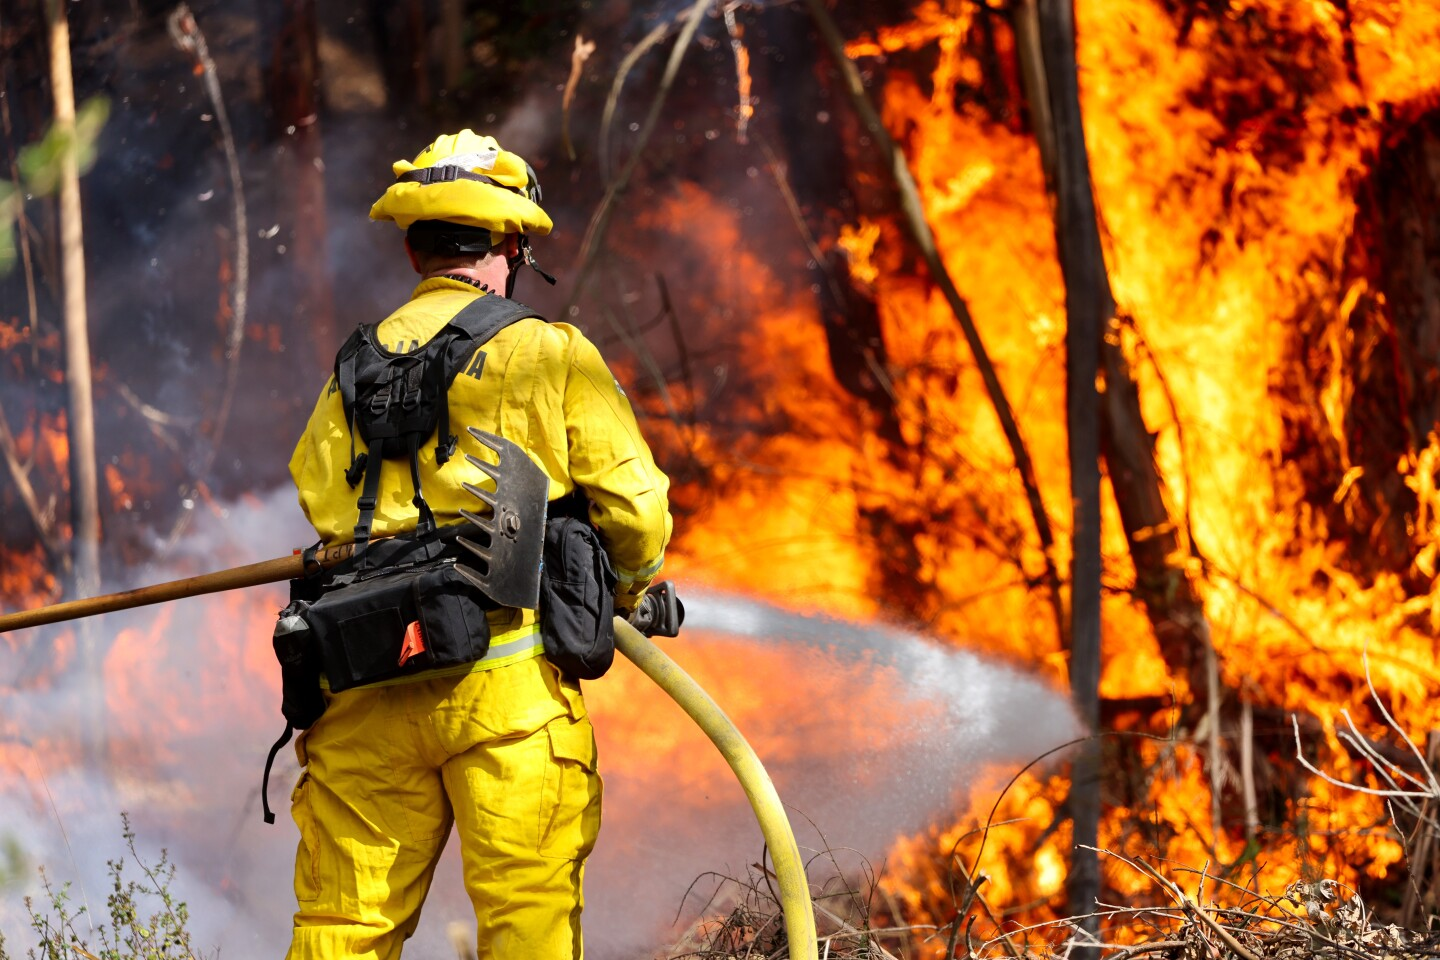 Firefighters from Aptos fire work to put out a blaze off of Gillette Rd. in Watsonville